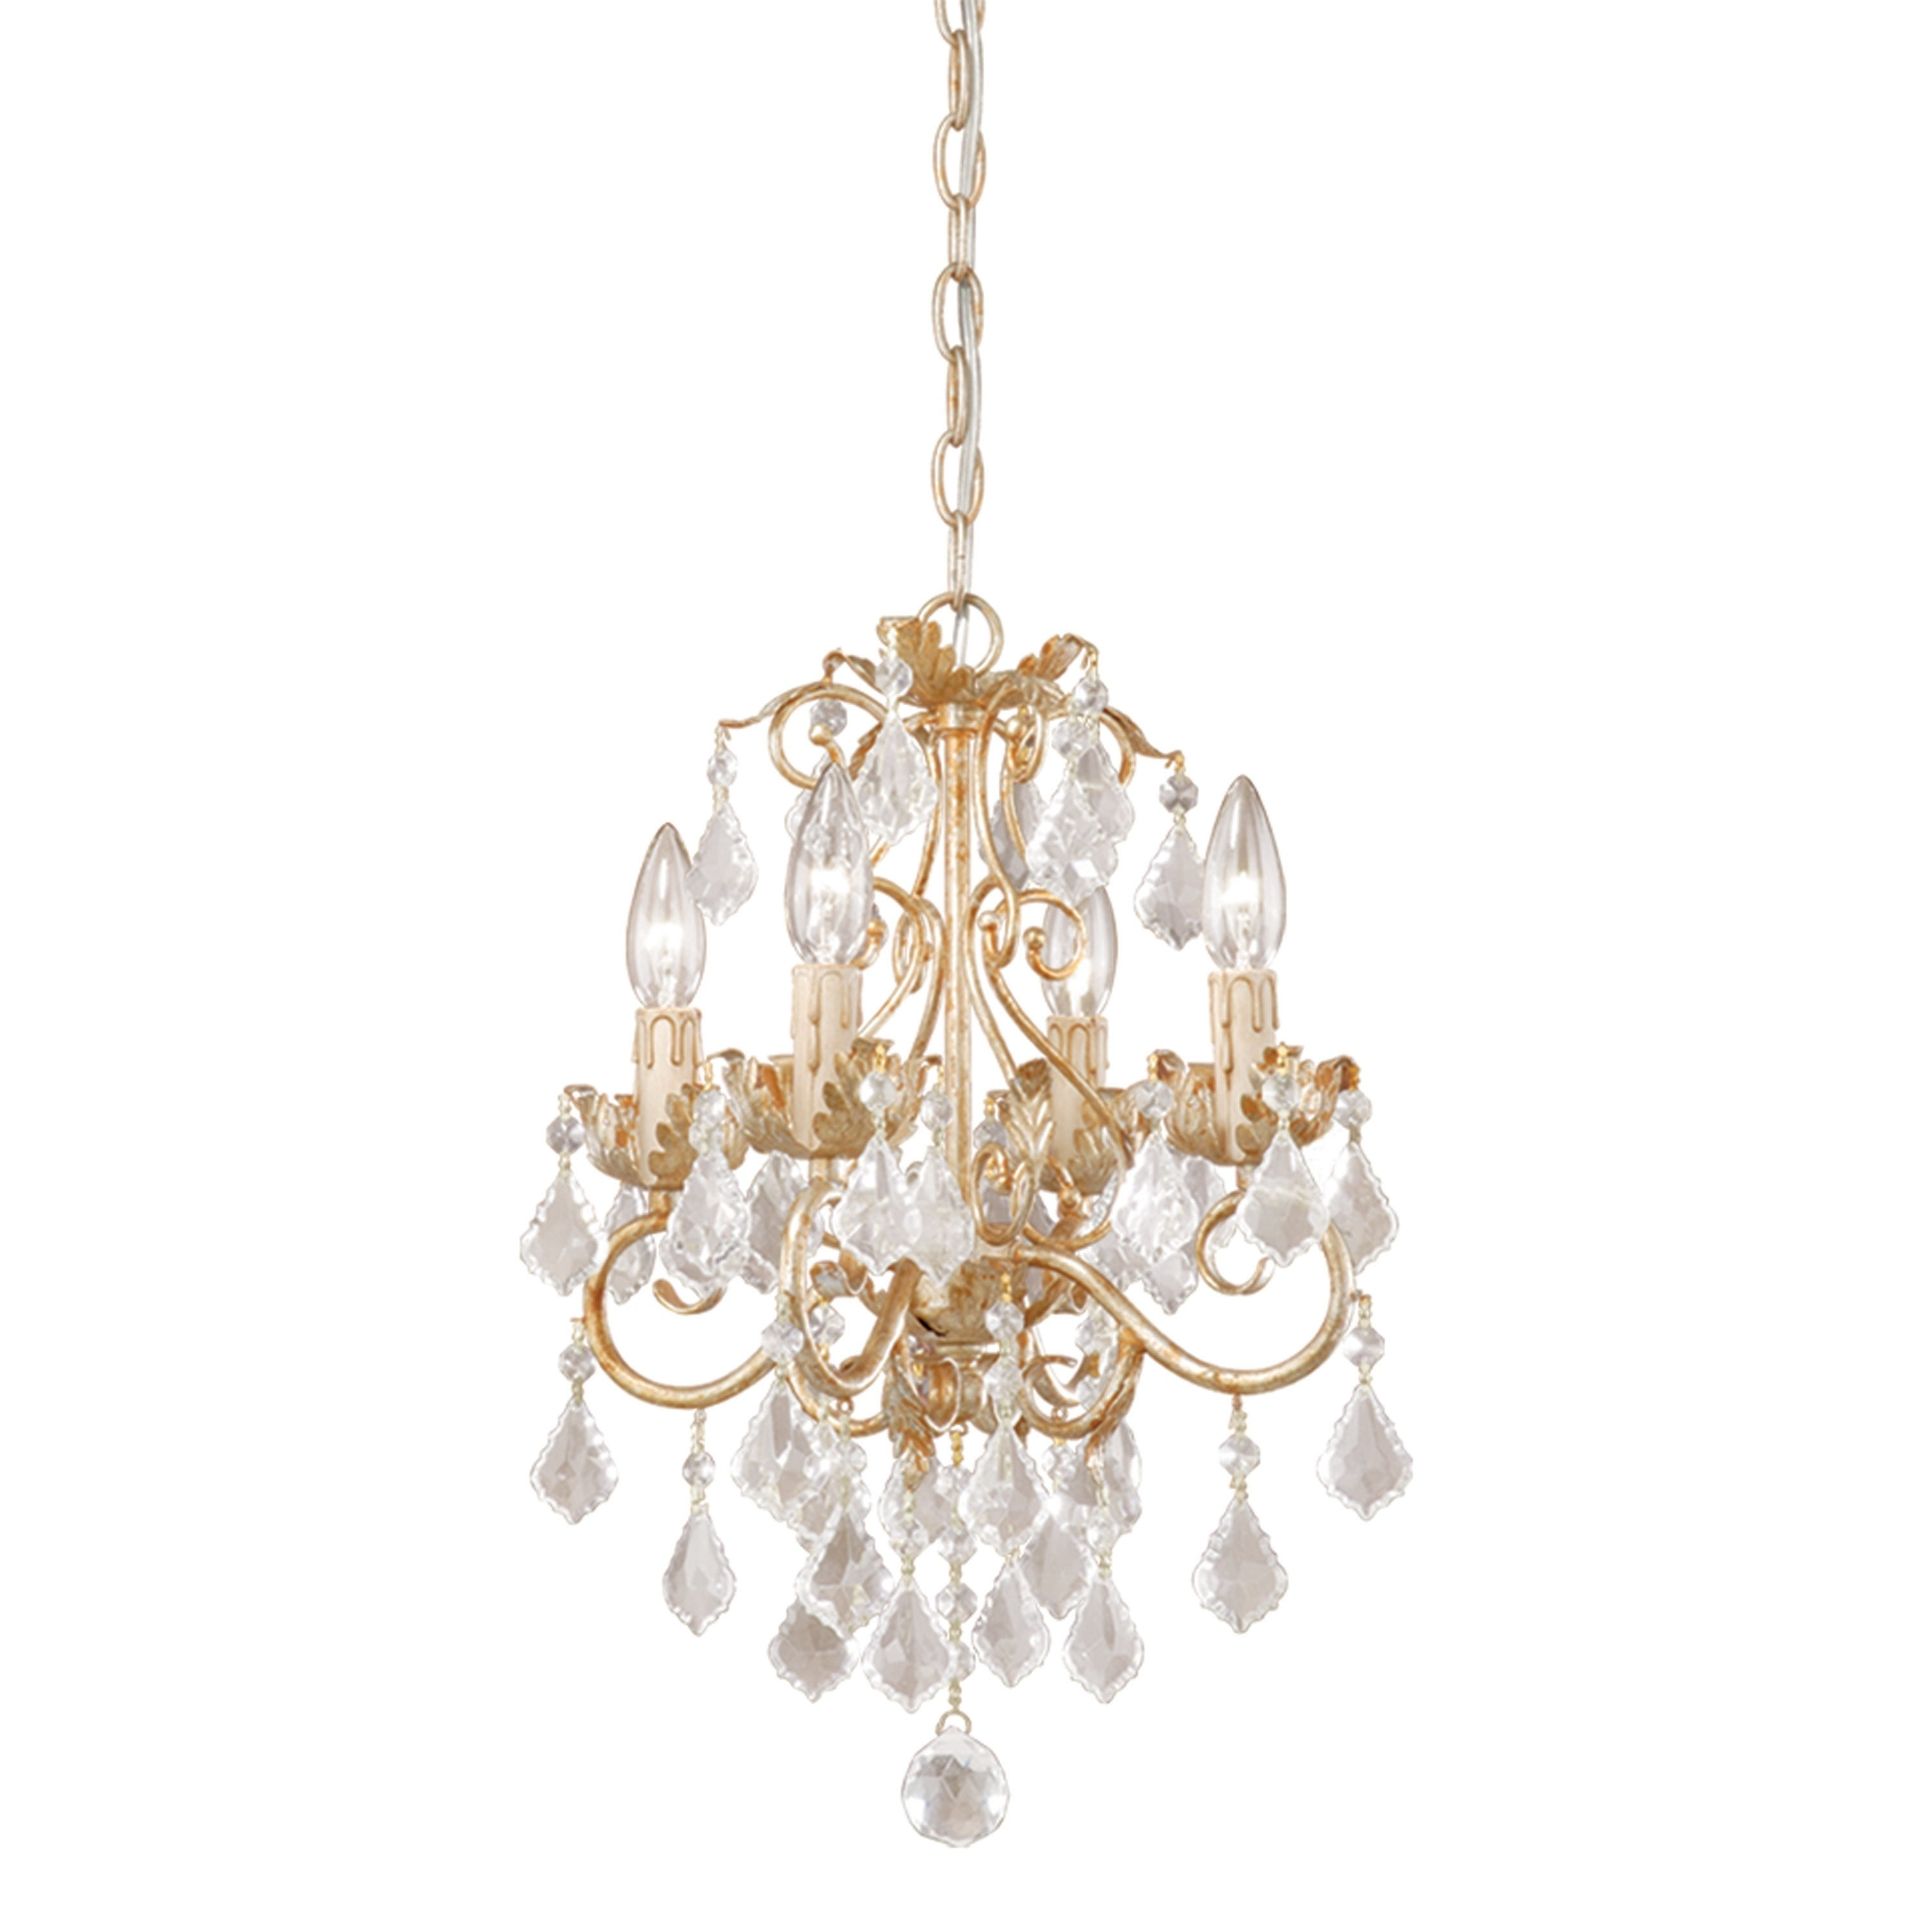 Newcastle 4 Light Crystal White Gold Vintage Candle Mini Chandelier 13 In W X 18 5 In H X 13 In D Overstock 20907023